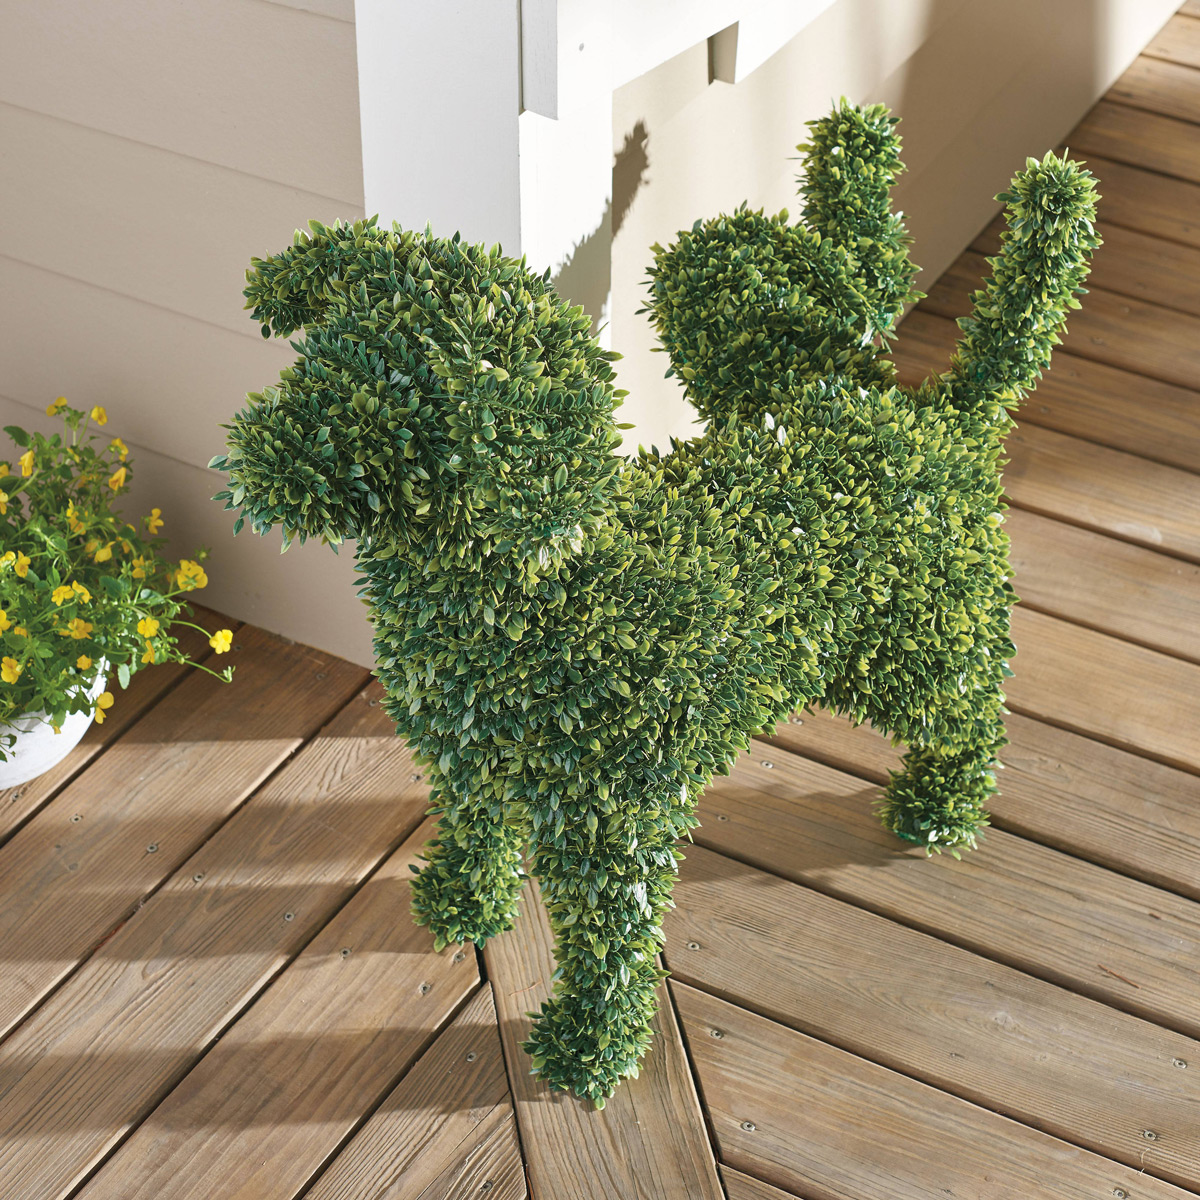 Decorative Peeing Dog Topiary The Green Head